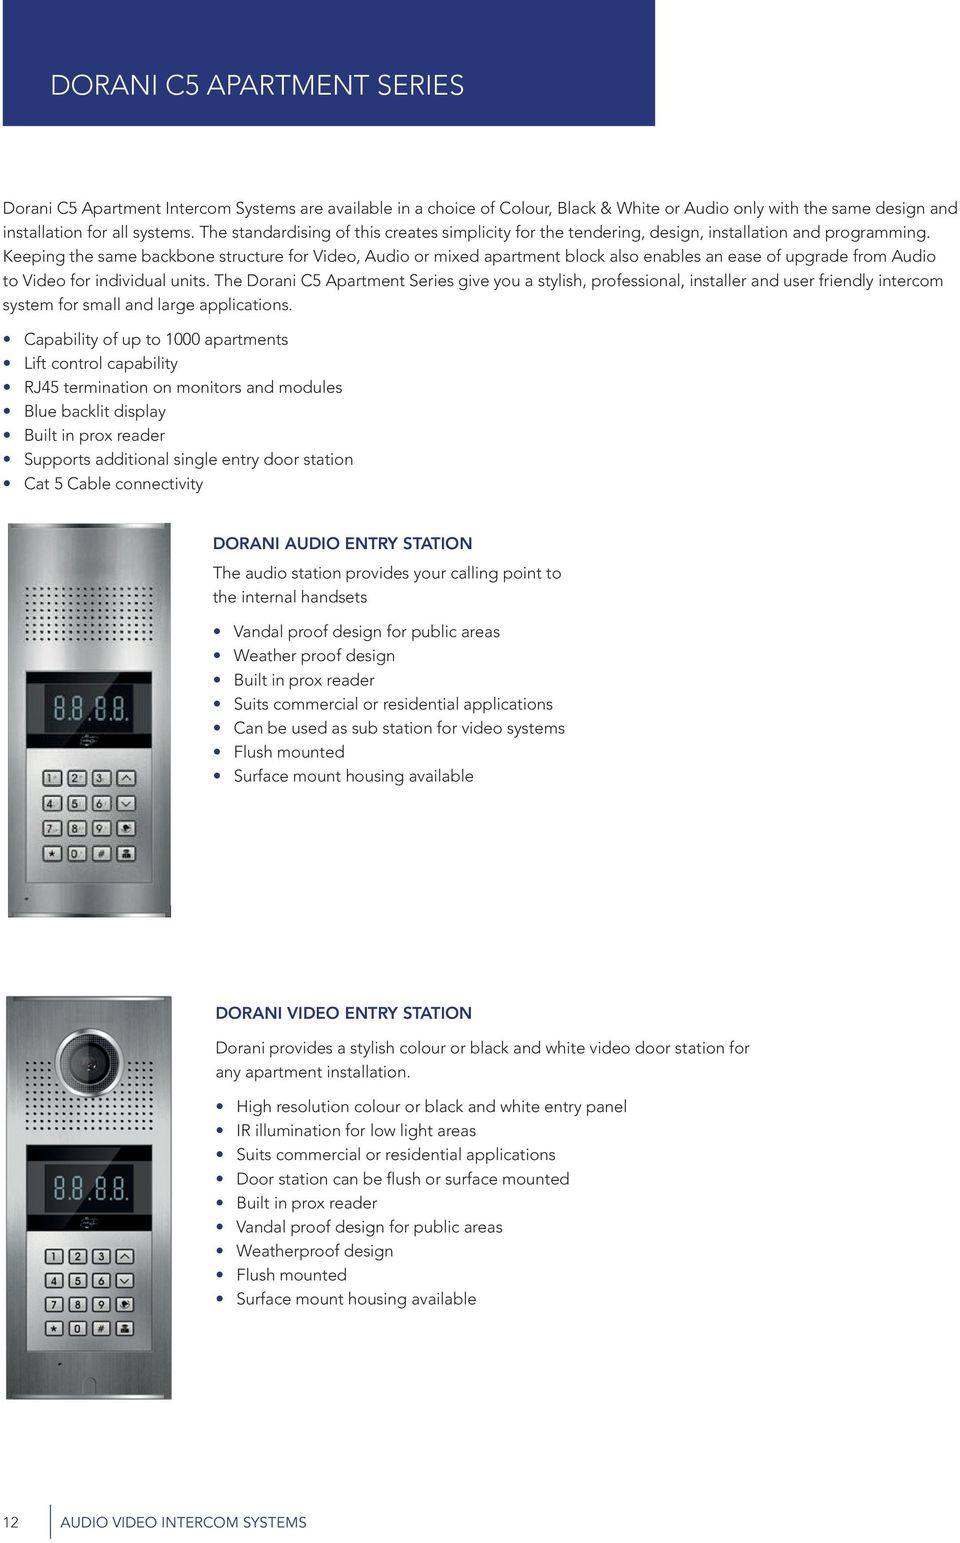 Amazing Audio Video Intercom Systems Security Safety At Your Finger Tips Wiring Digital Resources Arguphilshebarightsorg